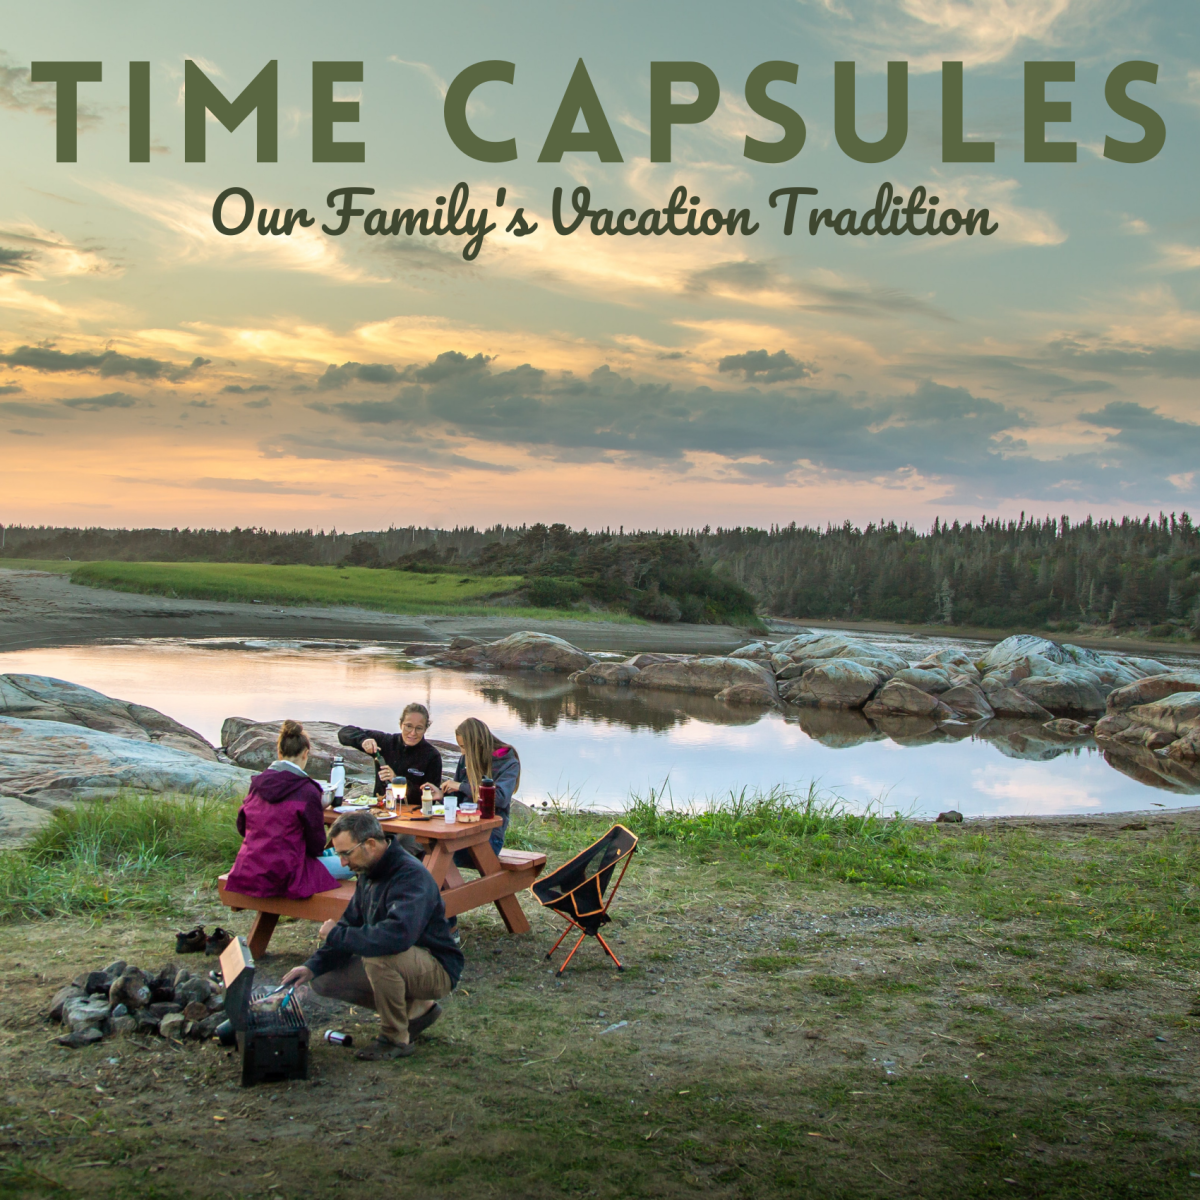 Every year, our family vacations in the same spot. We play this time capsule game every summer!